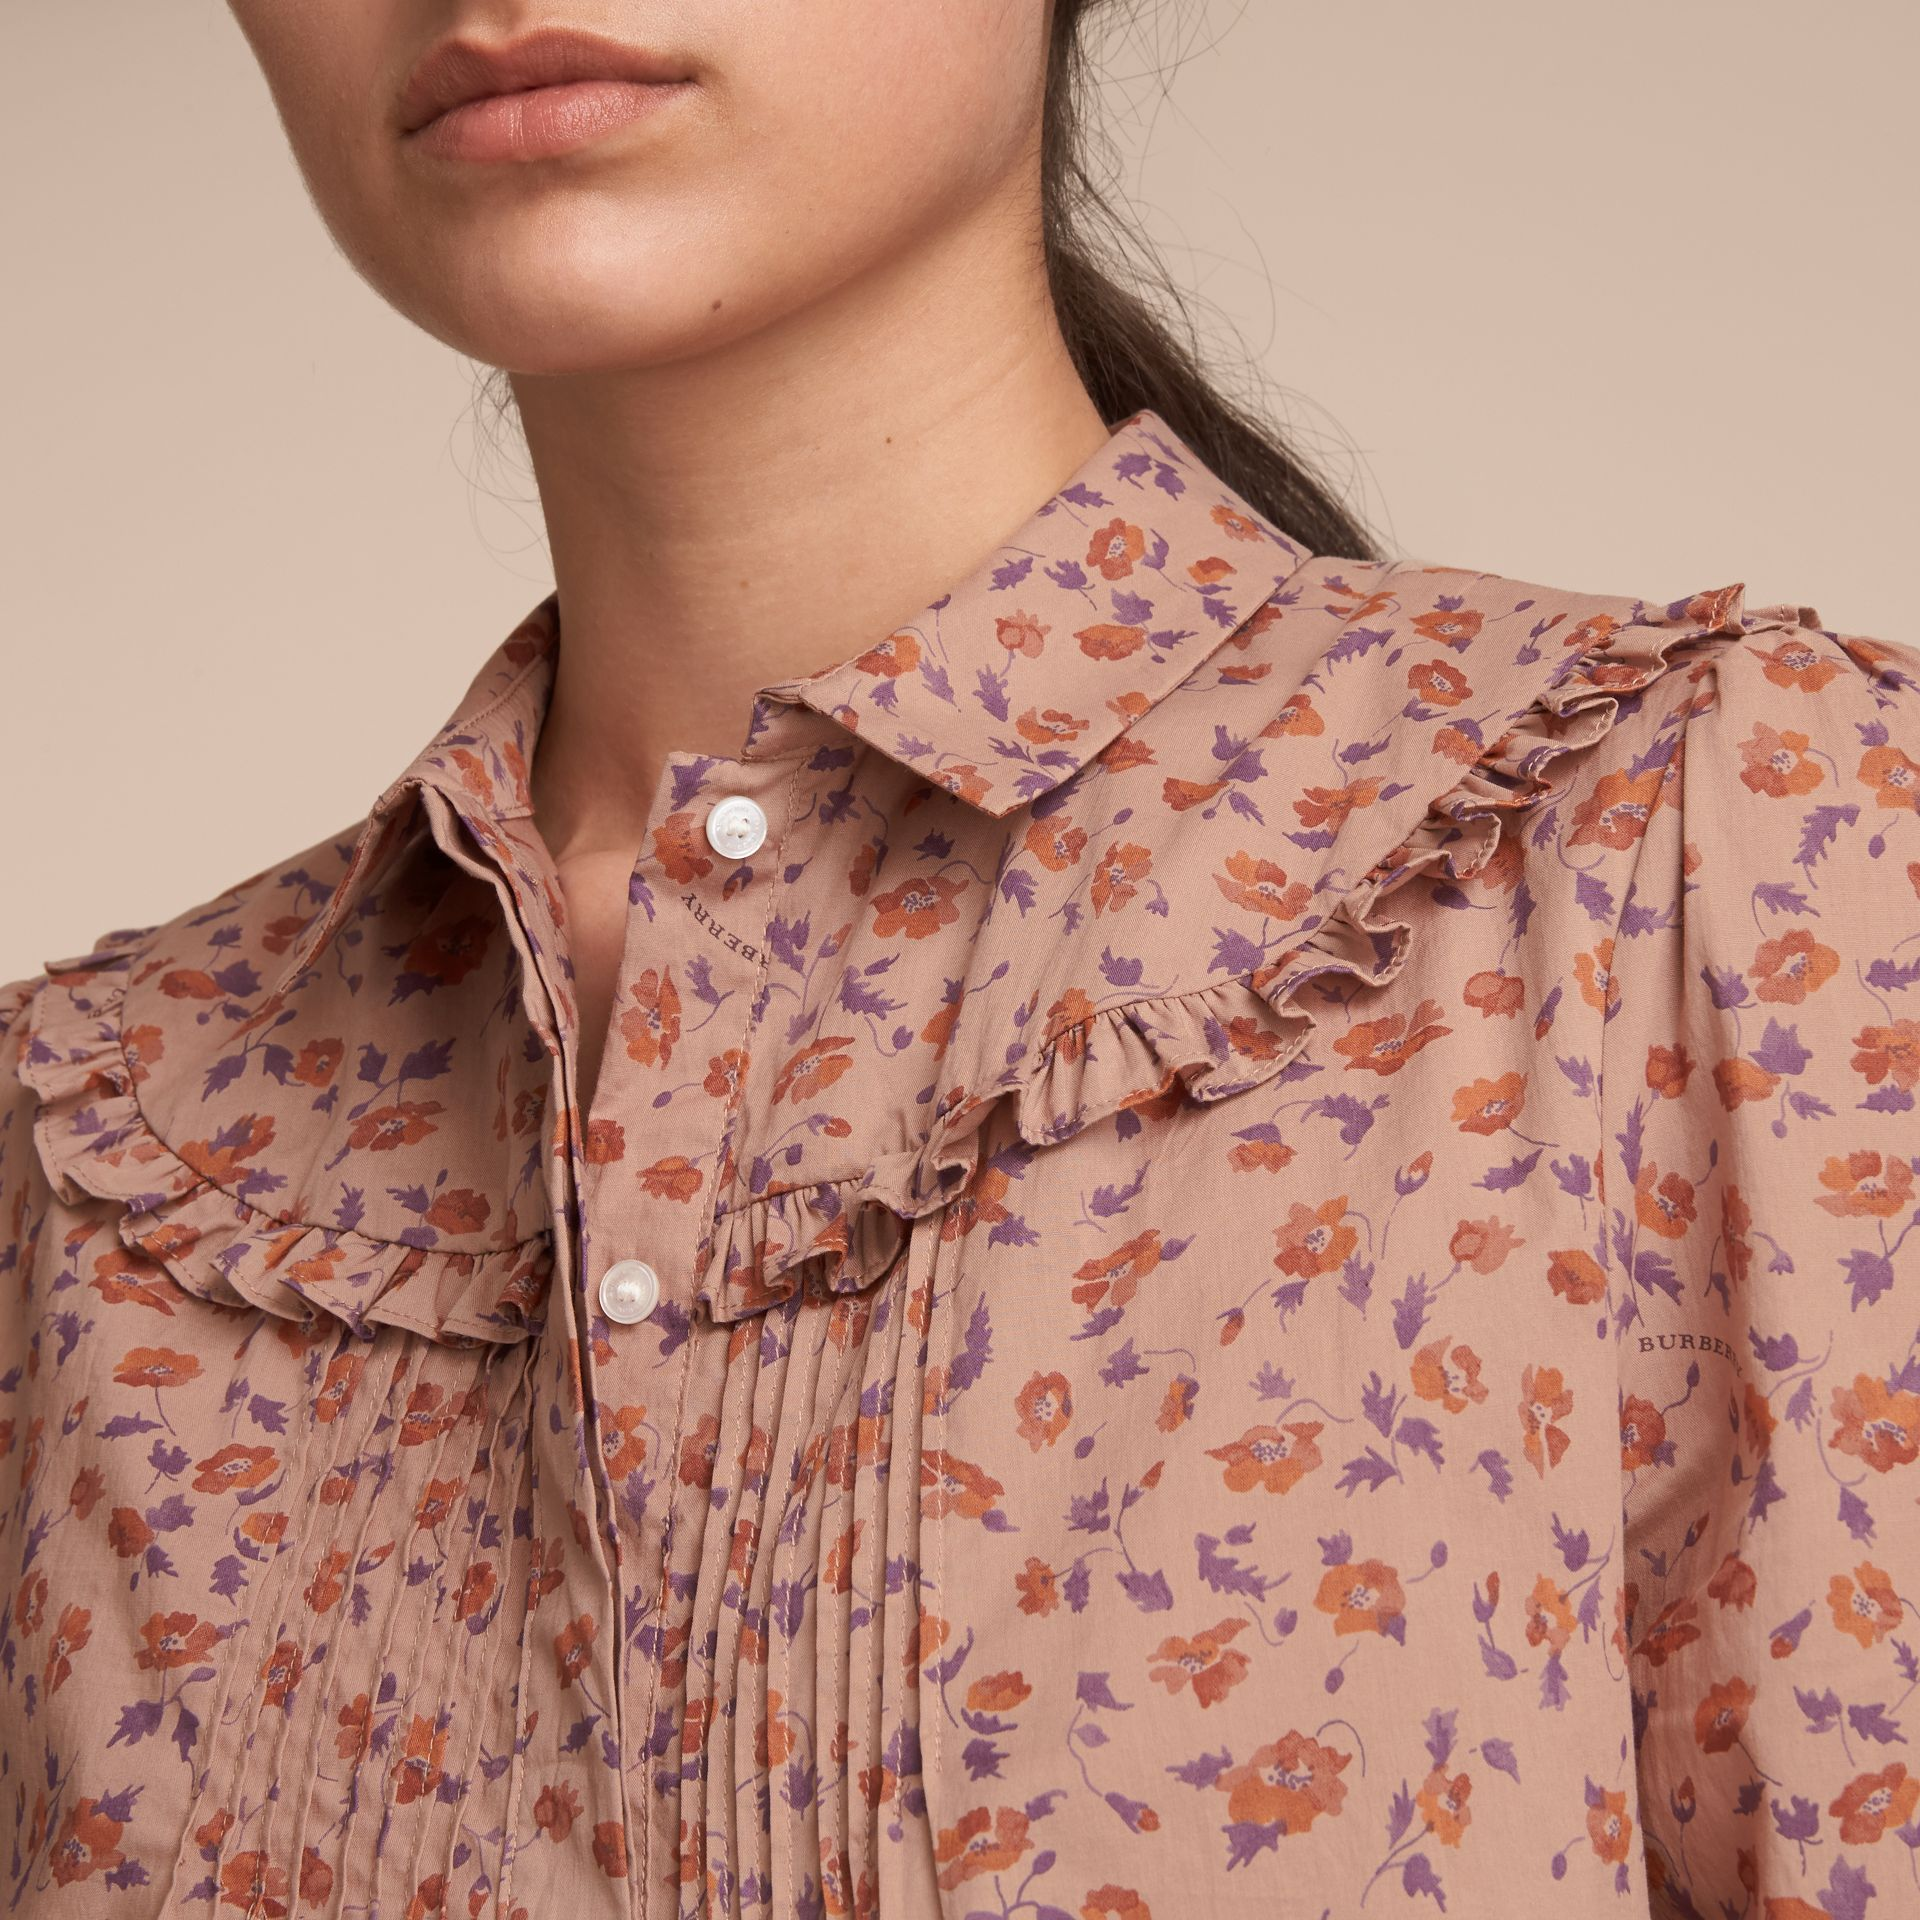 Ruffle Yoke Floral Print Cotton Shirt in Light Copper - Women | Burberry Canada - gallery image 5